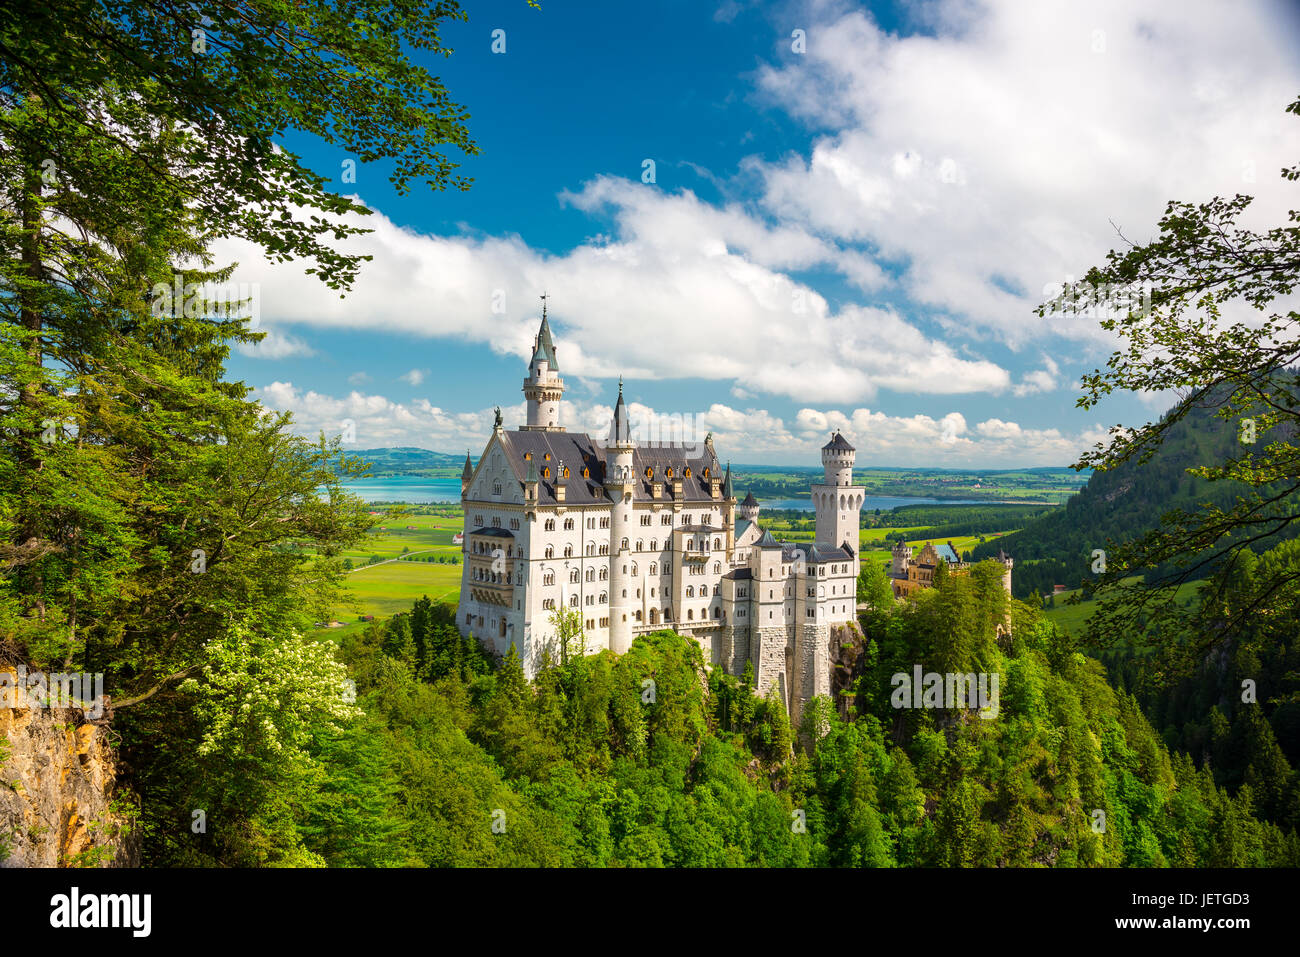 Neuschwanstein, Lovely Autumn Landscape Panorama Picture of the fairy tale castle near Munich in Bavaria, Germany - Stock Image